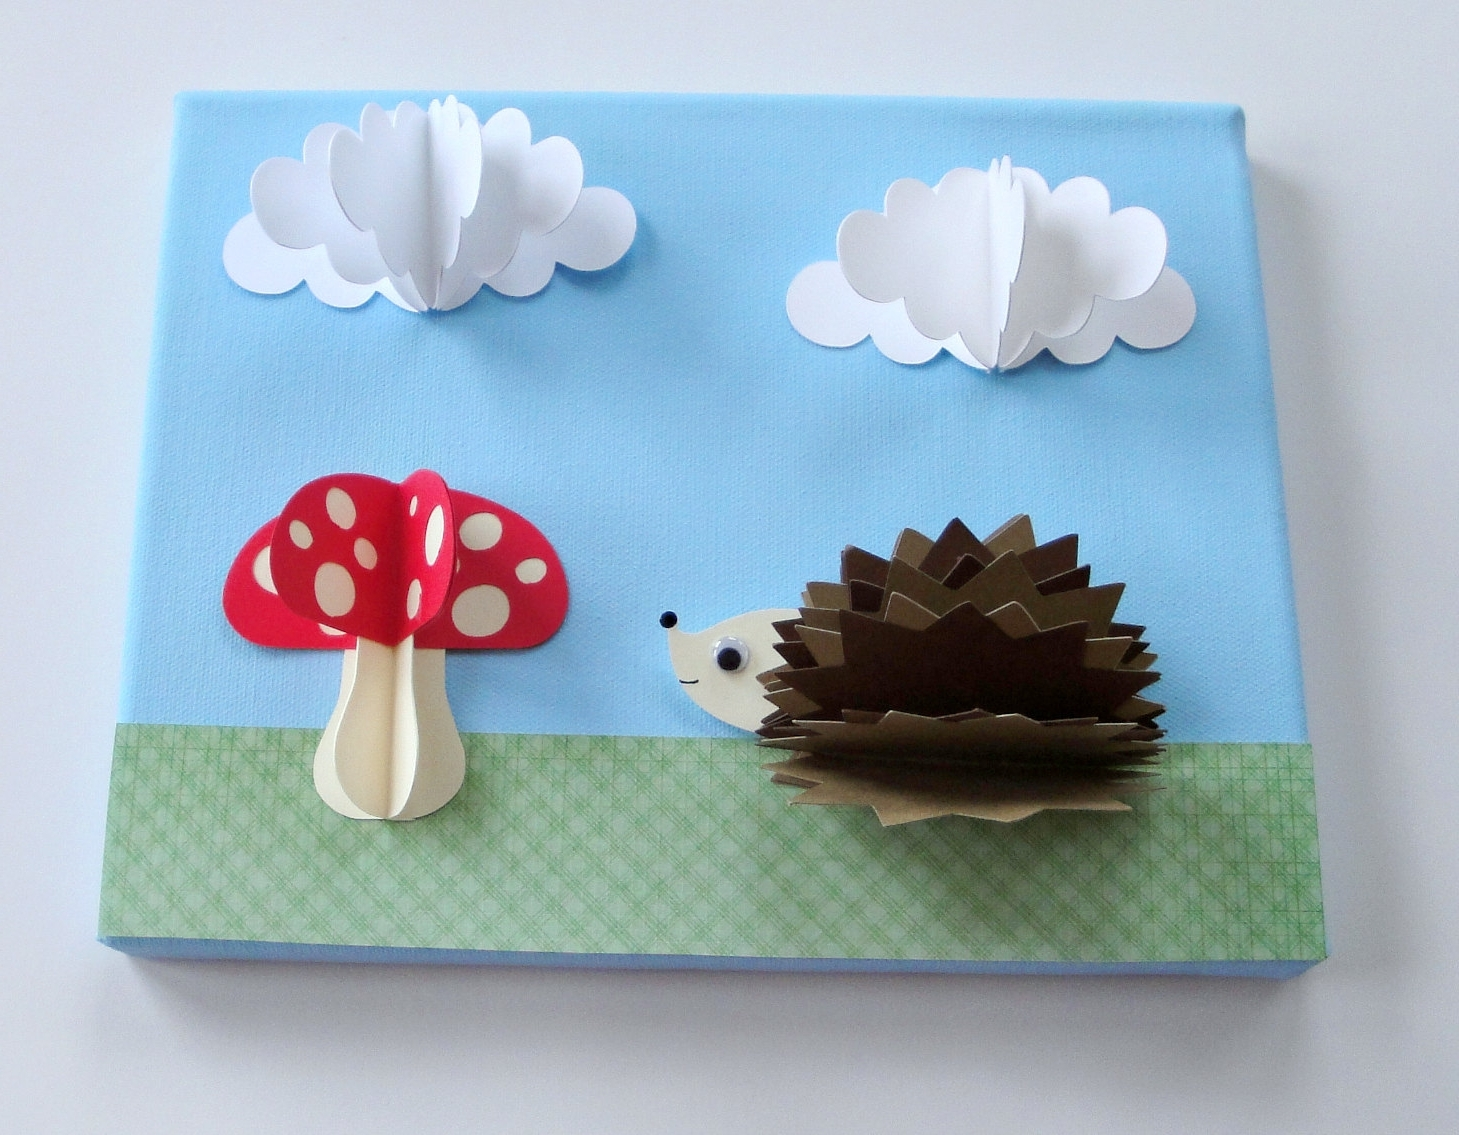 Newest Diy 3d Paper Wall Art Intended For Original Hedgehog And Mushroom 3d Paper Wall Art On 8 X 10 Canvas (View 8 of 15)